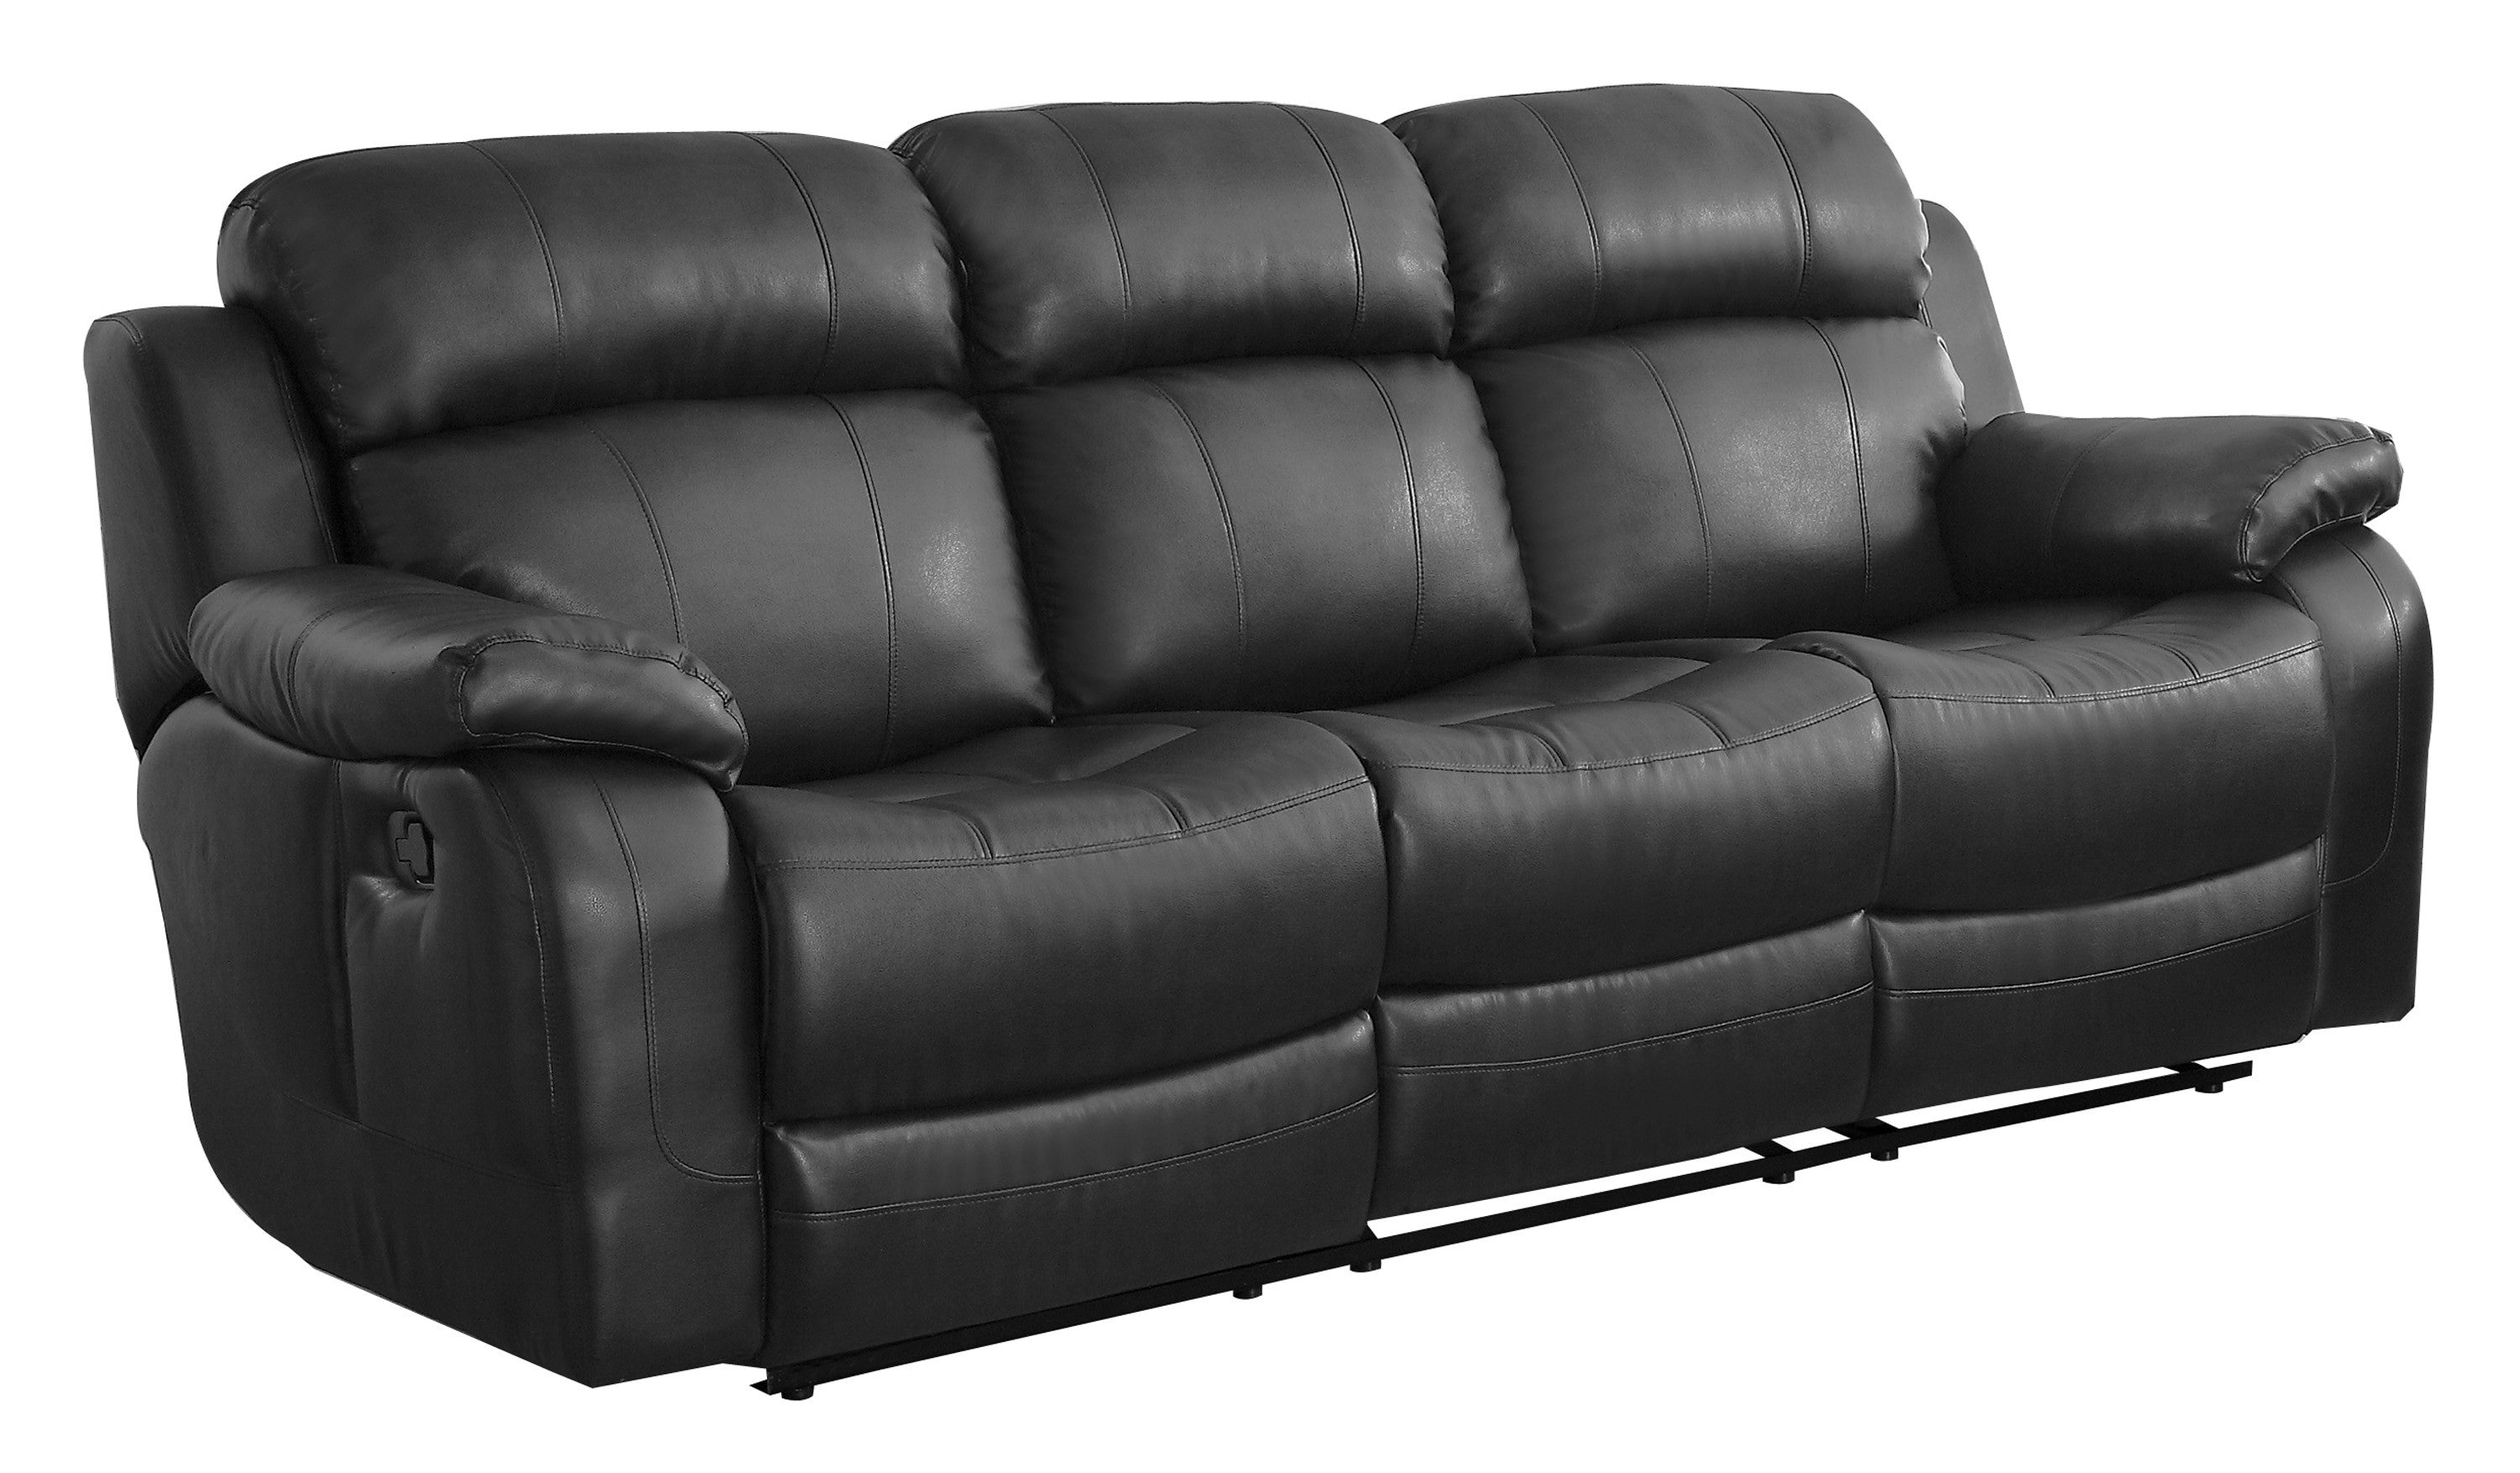 Prime Marille Black Bonded Leather Reclining Sofa With Drop Down Cup Holders 9724 Creativecarmelina Interior Chair Design Creativecarmelinacom